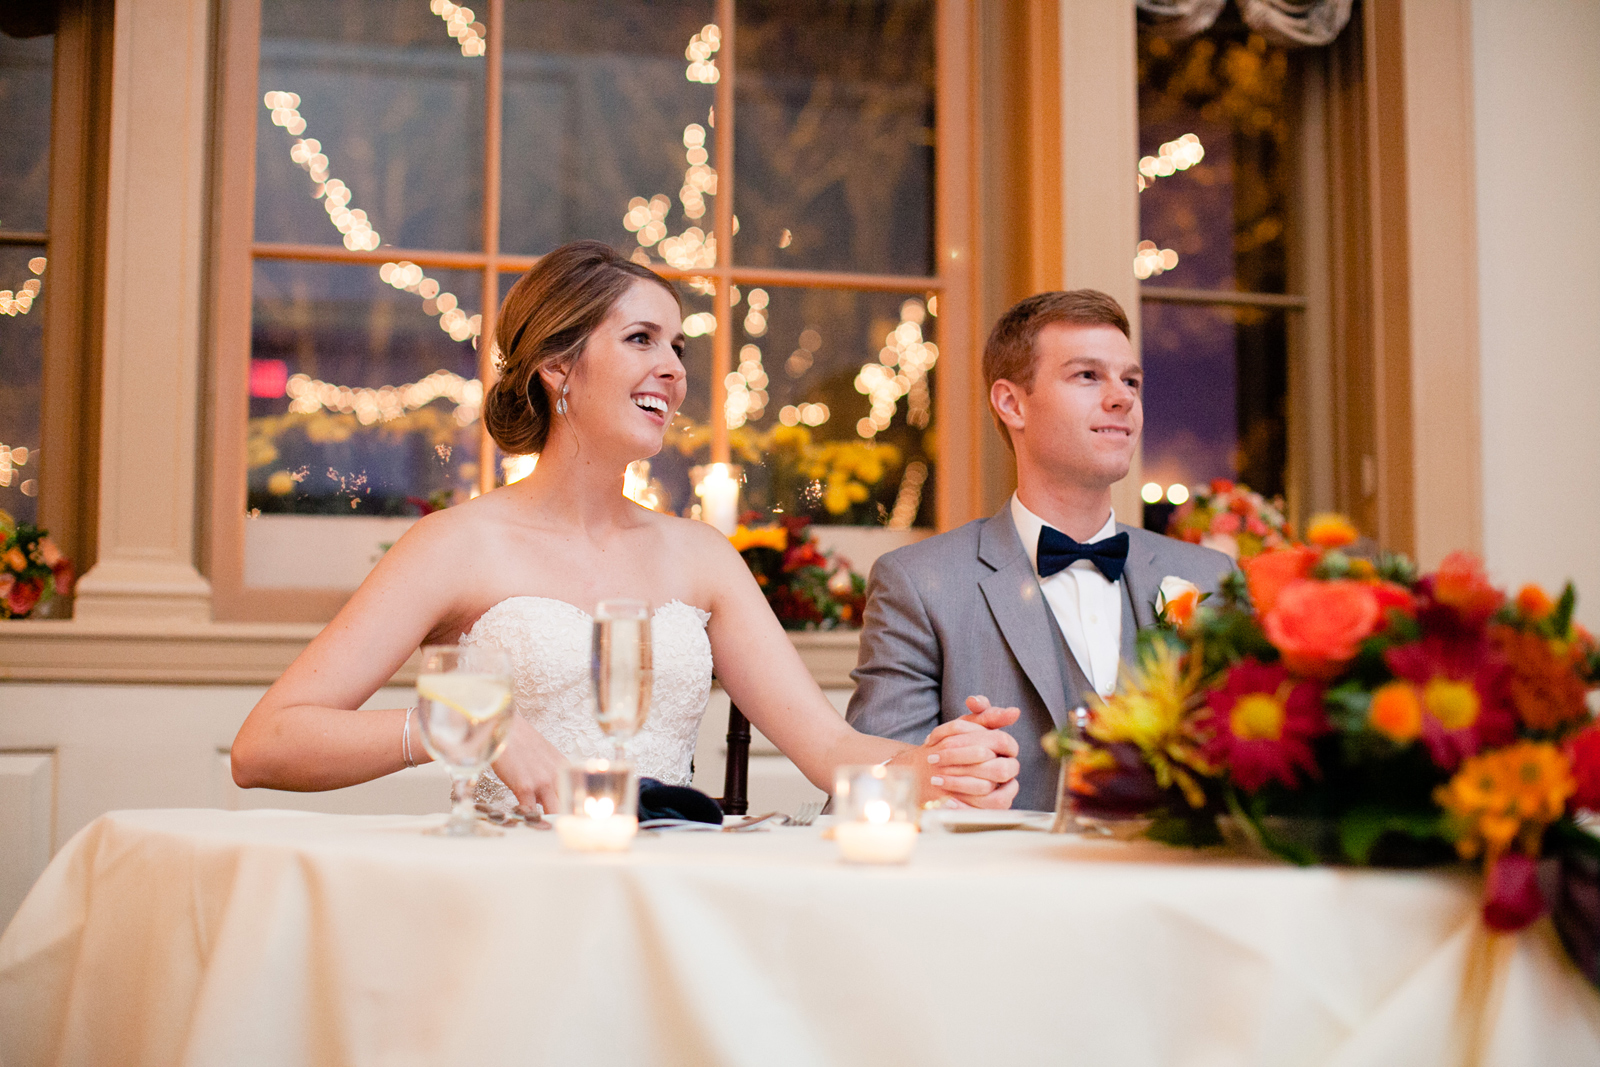 wedding toast reactions from bride and groom